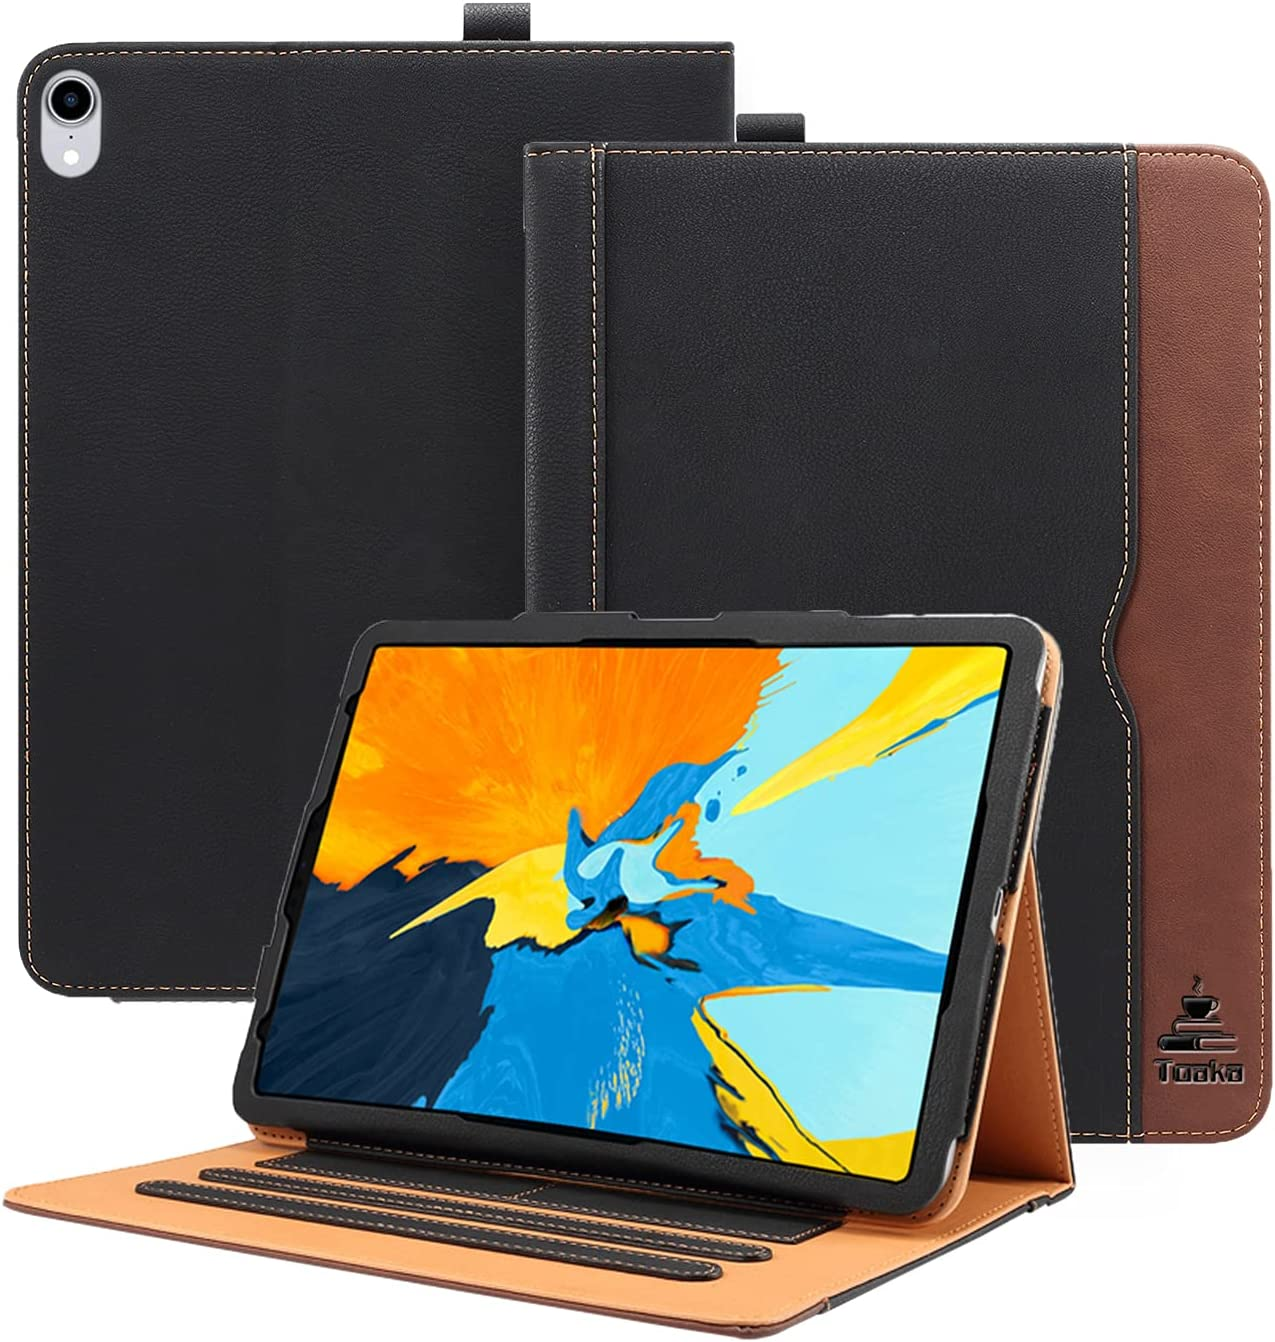 TOAKA iPad Air 4 Case - Apple iPad Air 4th Generation 10.9 Inch 2020 Soft Leather Stand Folio Case Smart Cover, Auto Sleep/Wake, Document Pockets & Card Holders, Multiple Viewing Angles (Black&Brown)